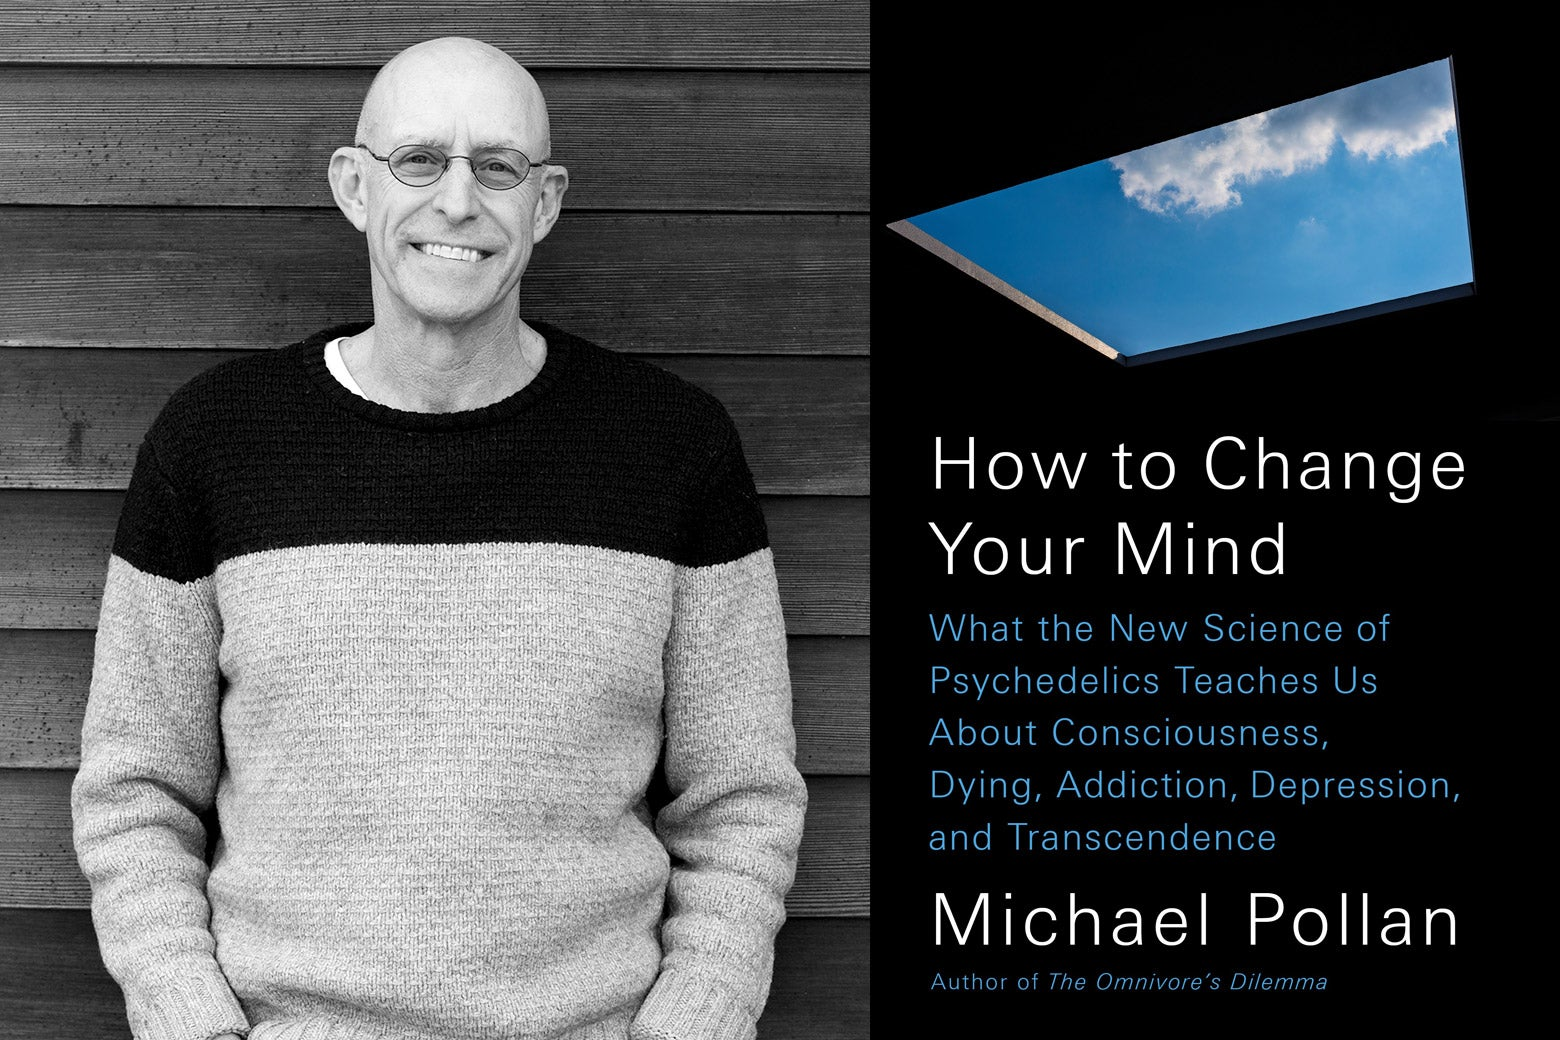 A photo of Michael Pollanc and the cover of his book.